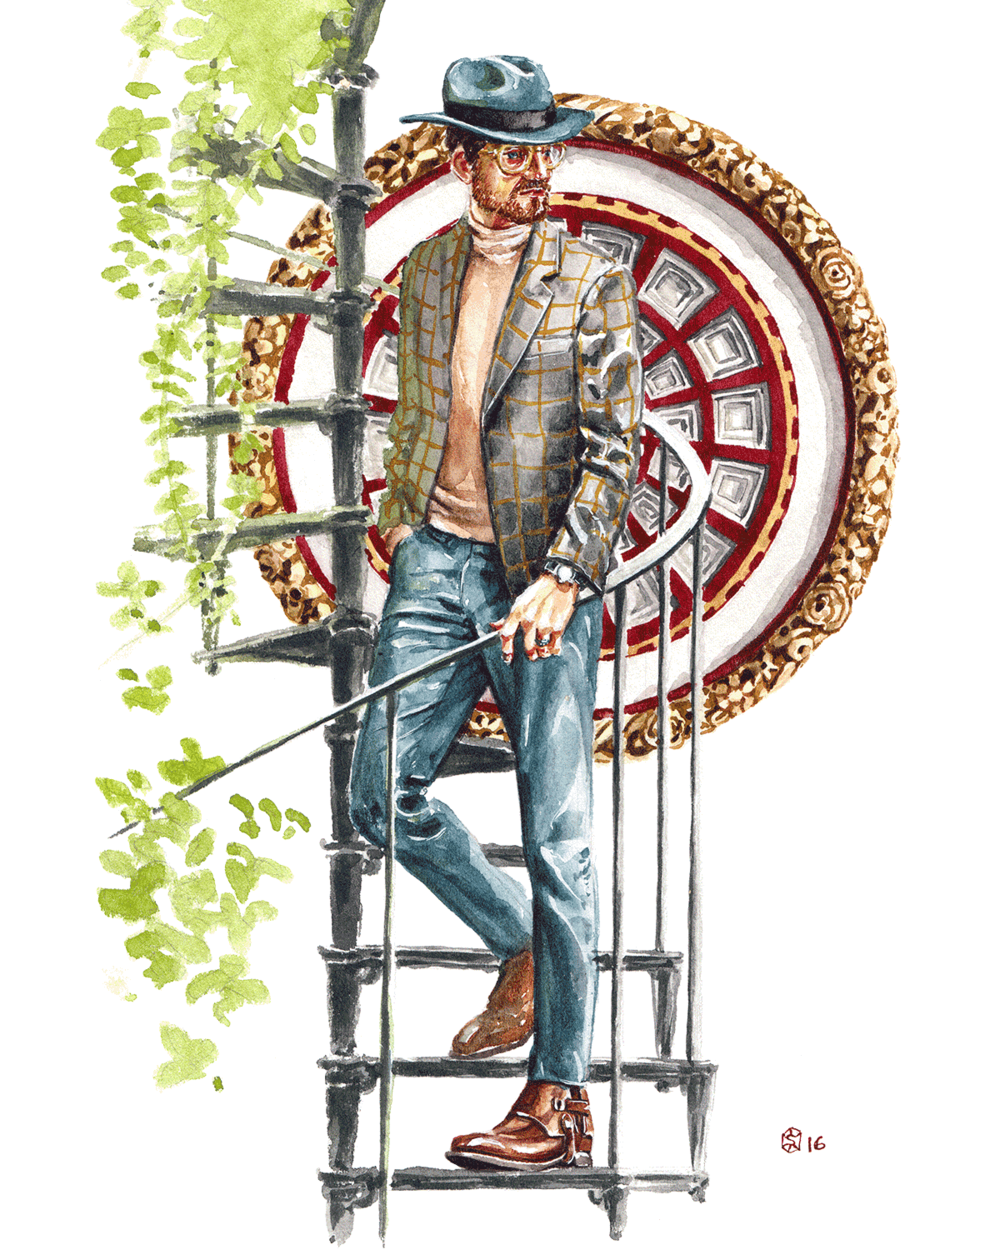 Well dressed man in an Italian style with a coffered illustration as backdrop as he walks down spiral stairs